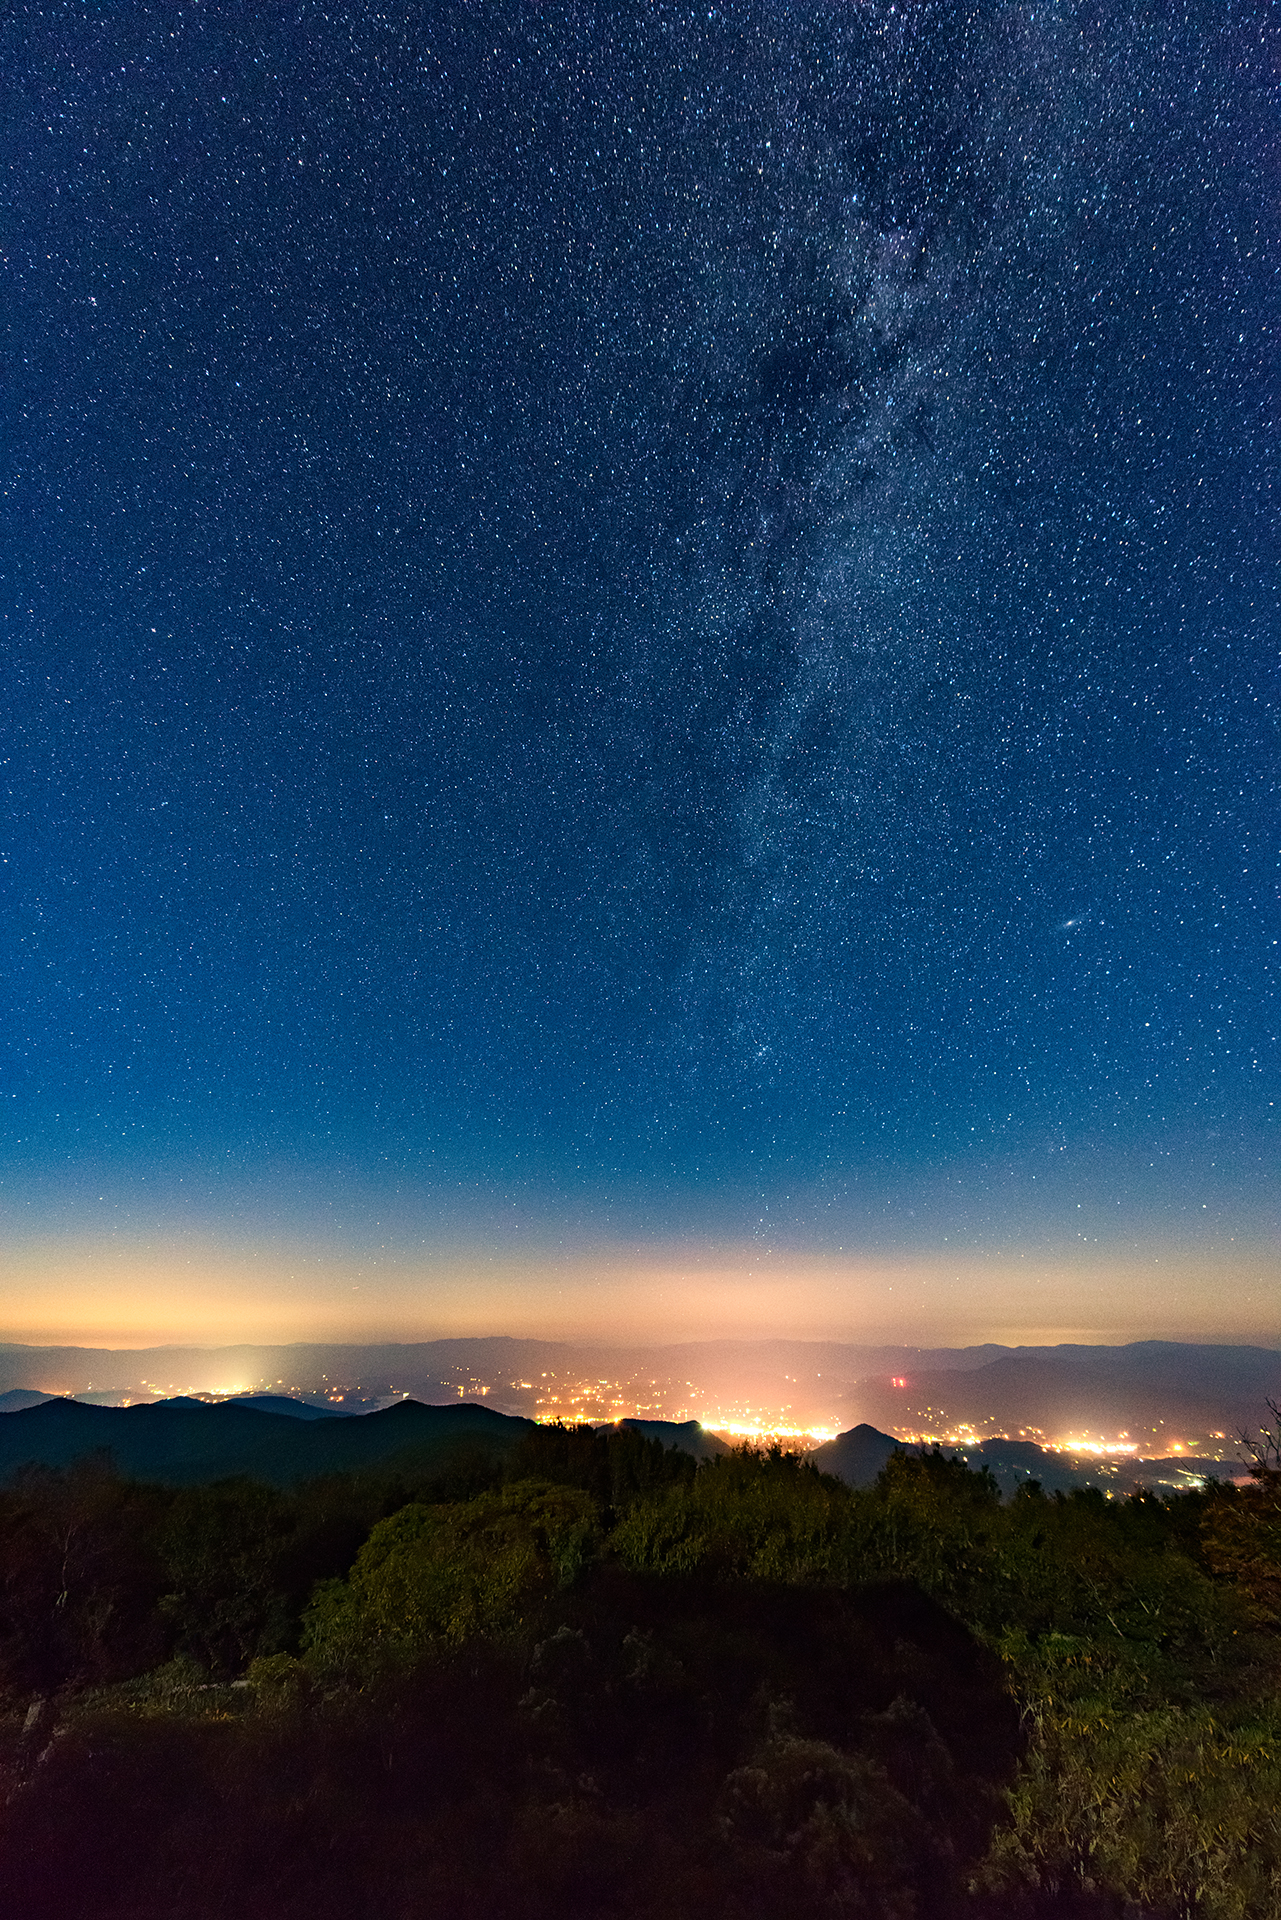 Brasstown Bald City Lights & The Stars